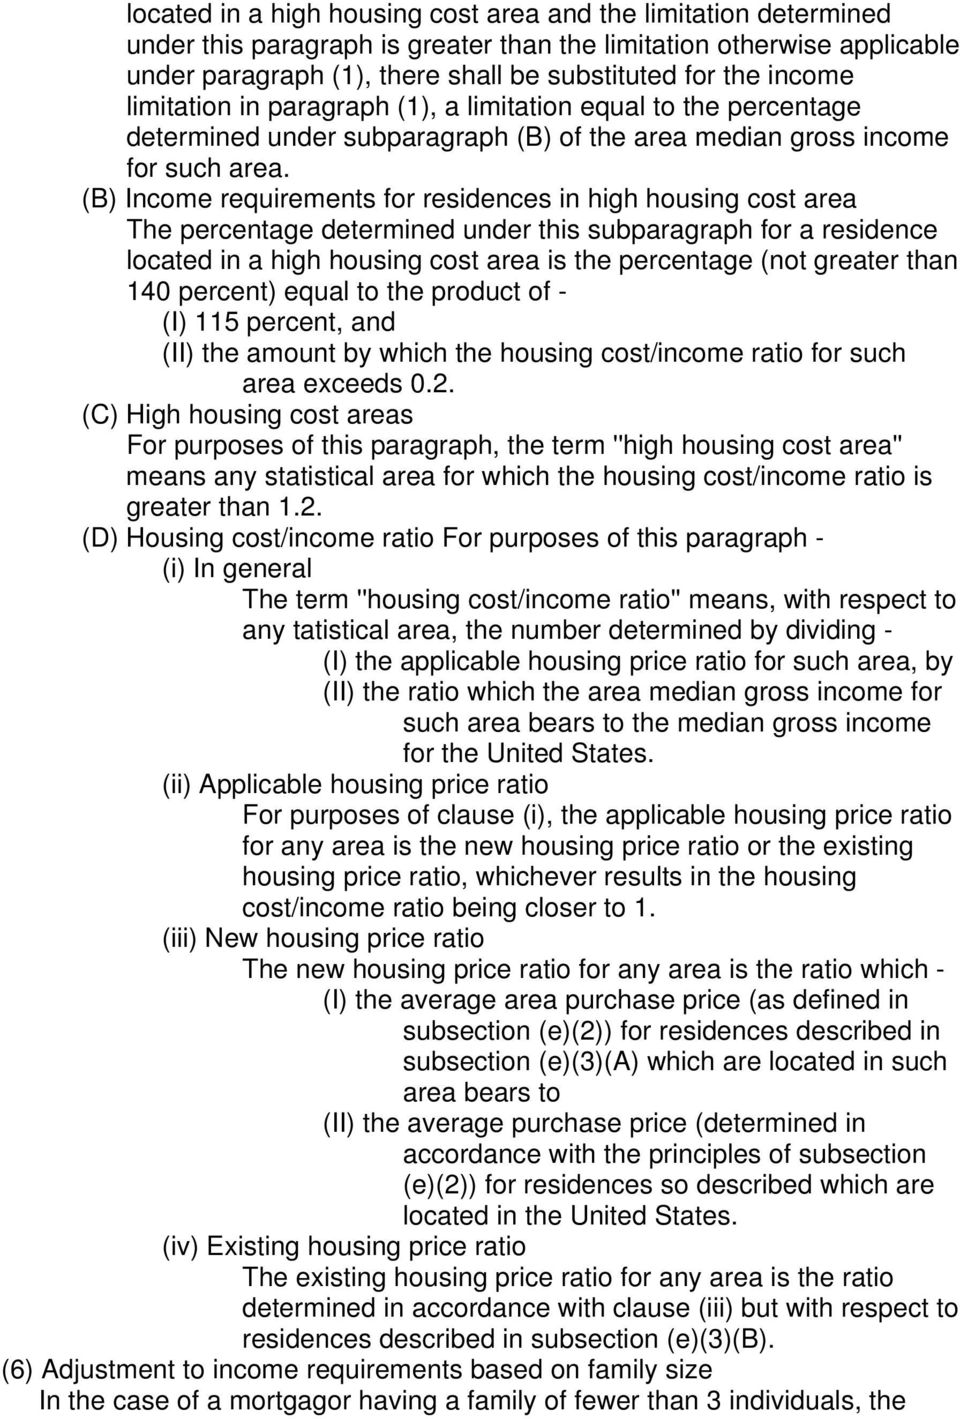 (B) Income requirements for residences in high housing cost area The percentage determined under this subparagraph for a residence located in a high housing cost area is the percentage (not greater